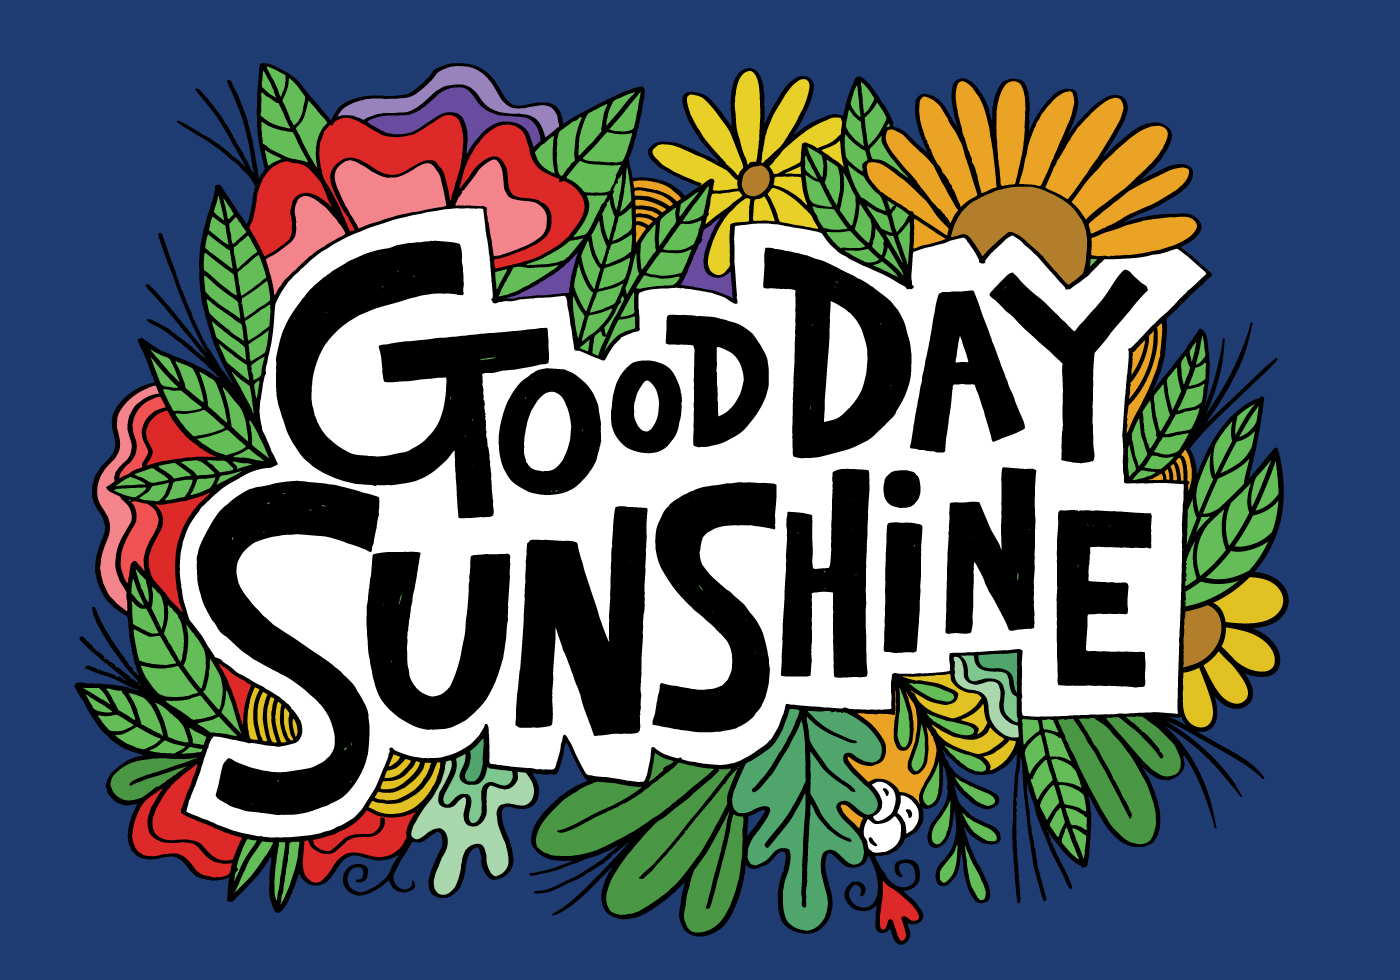 How to Say Have a Good Day in Korean – Good Day Sunshine!